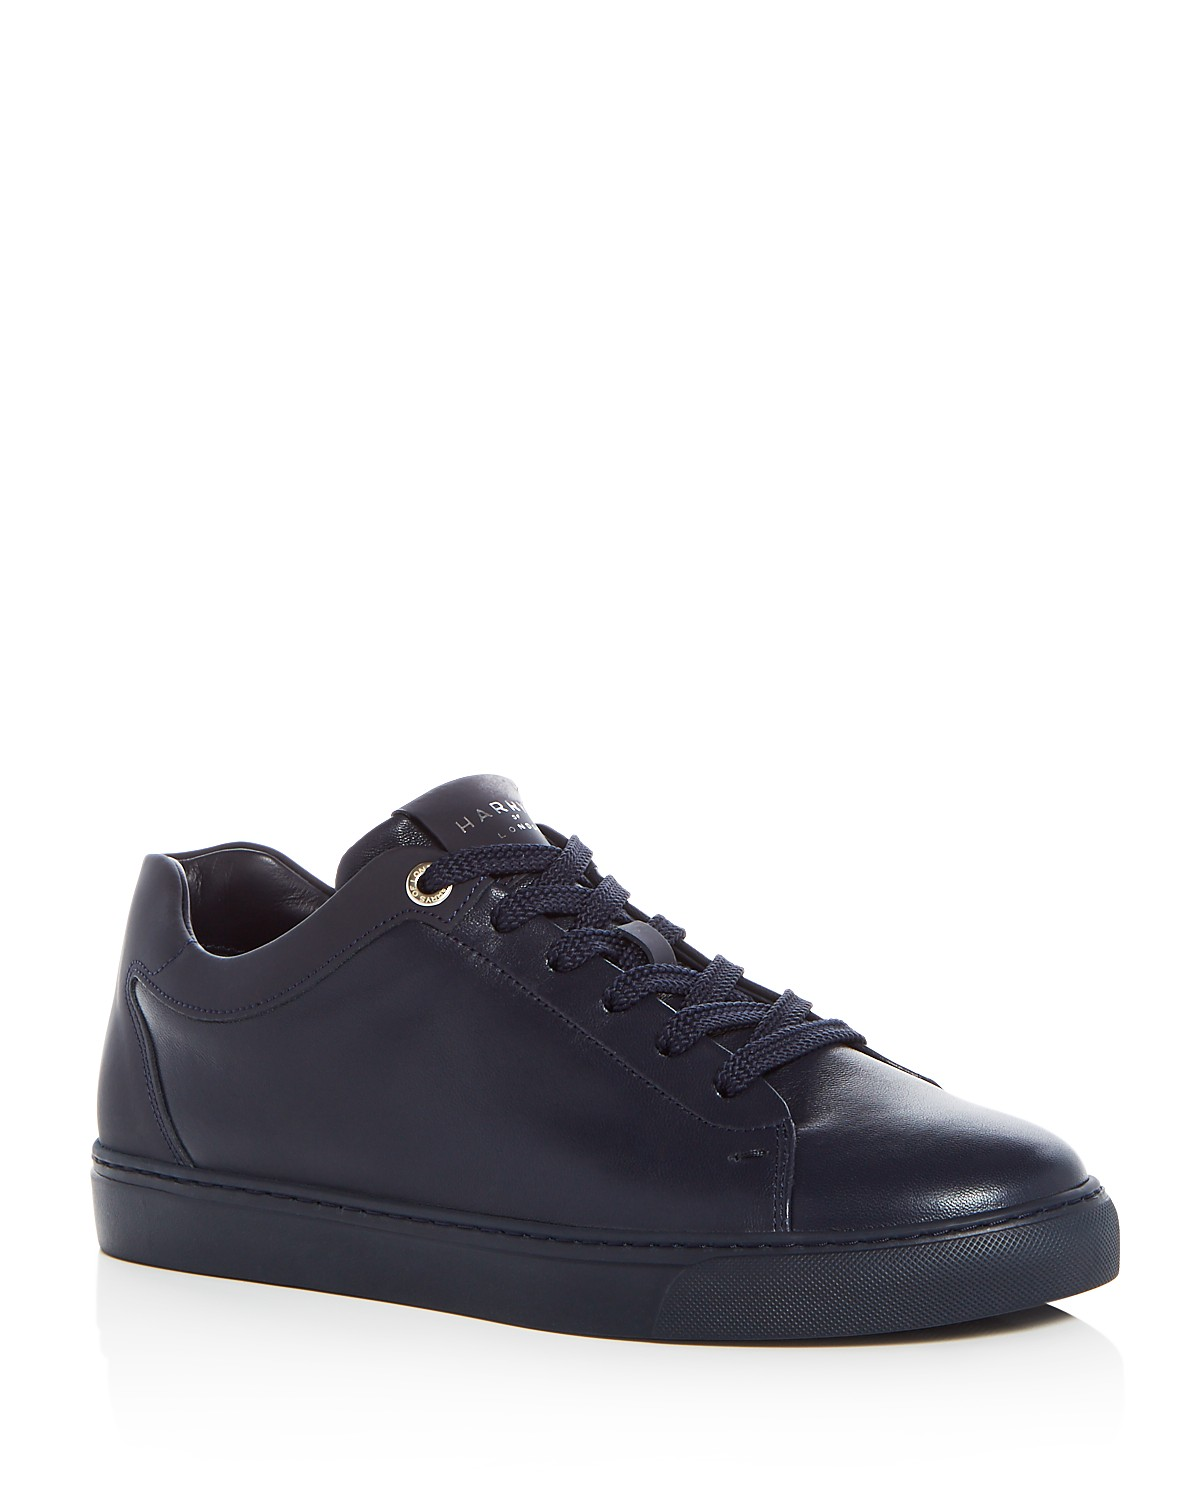 HARRYS OF LONDONMen's Tom Leather Lace Up Sneakers BLSeCI